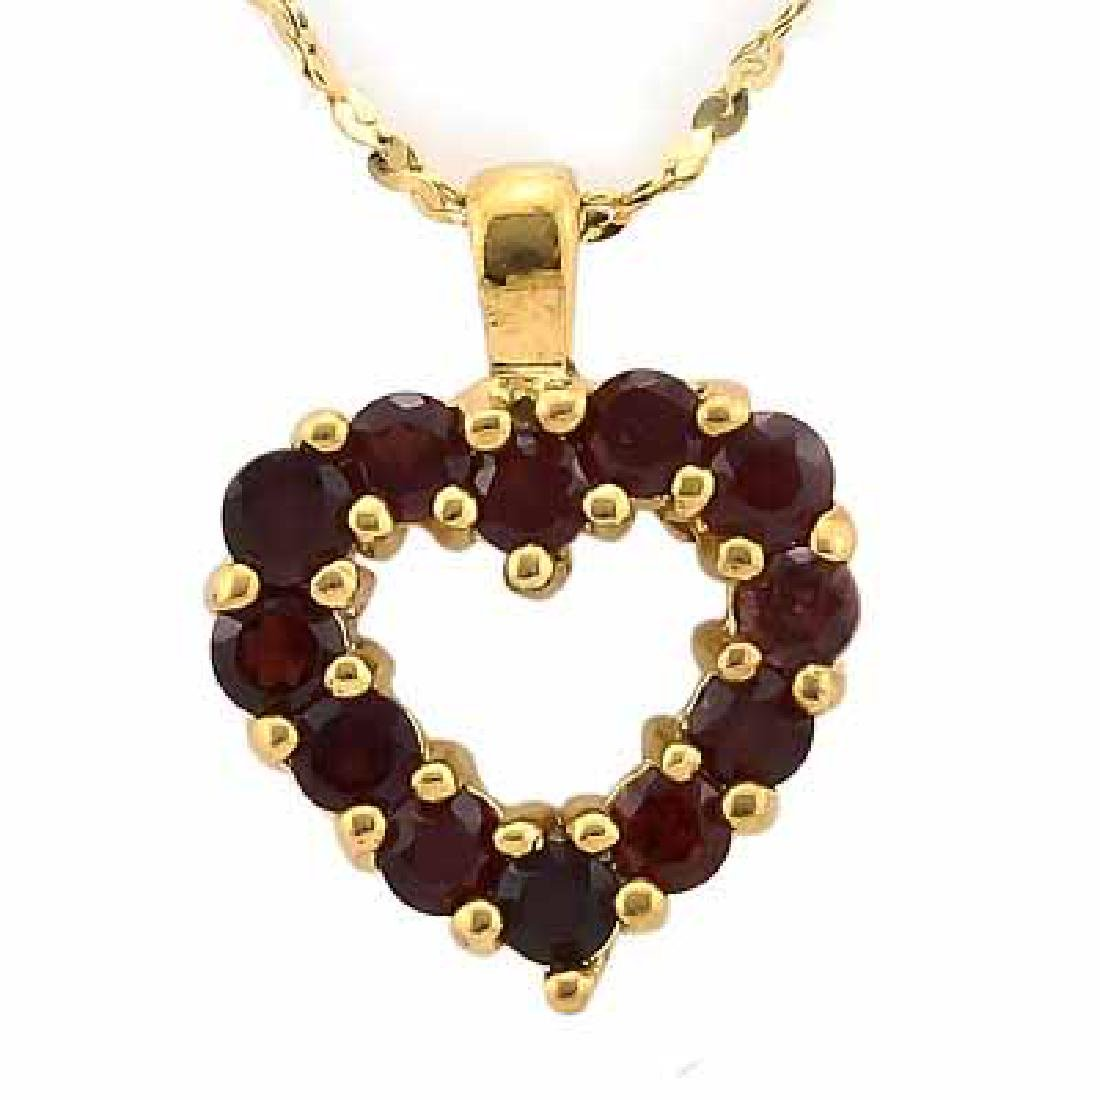 0.6 CARAT TW (12 PCS) GARNET IN 24K GOLD PLATED SILVER